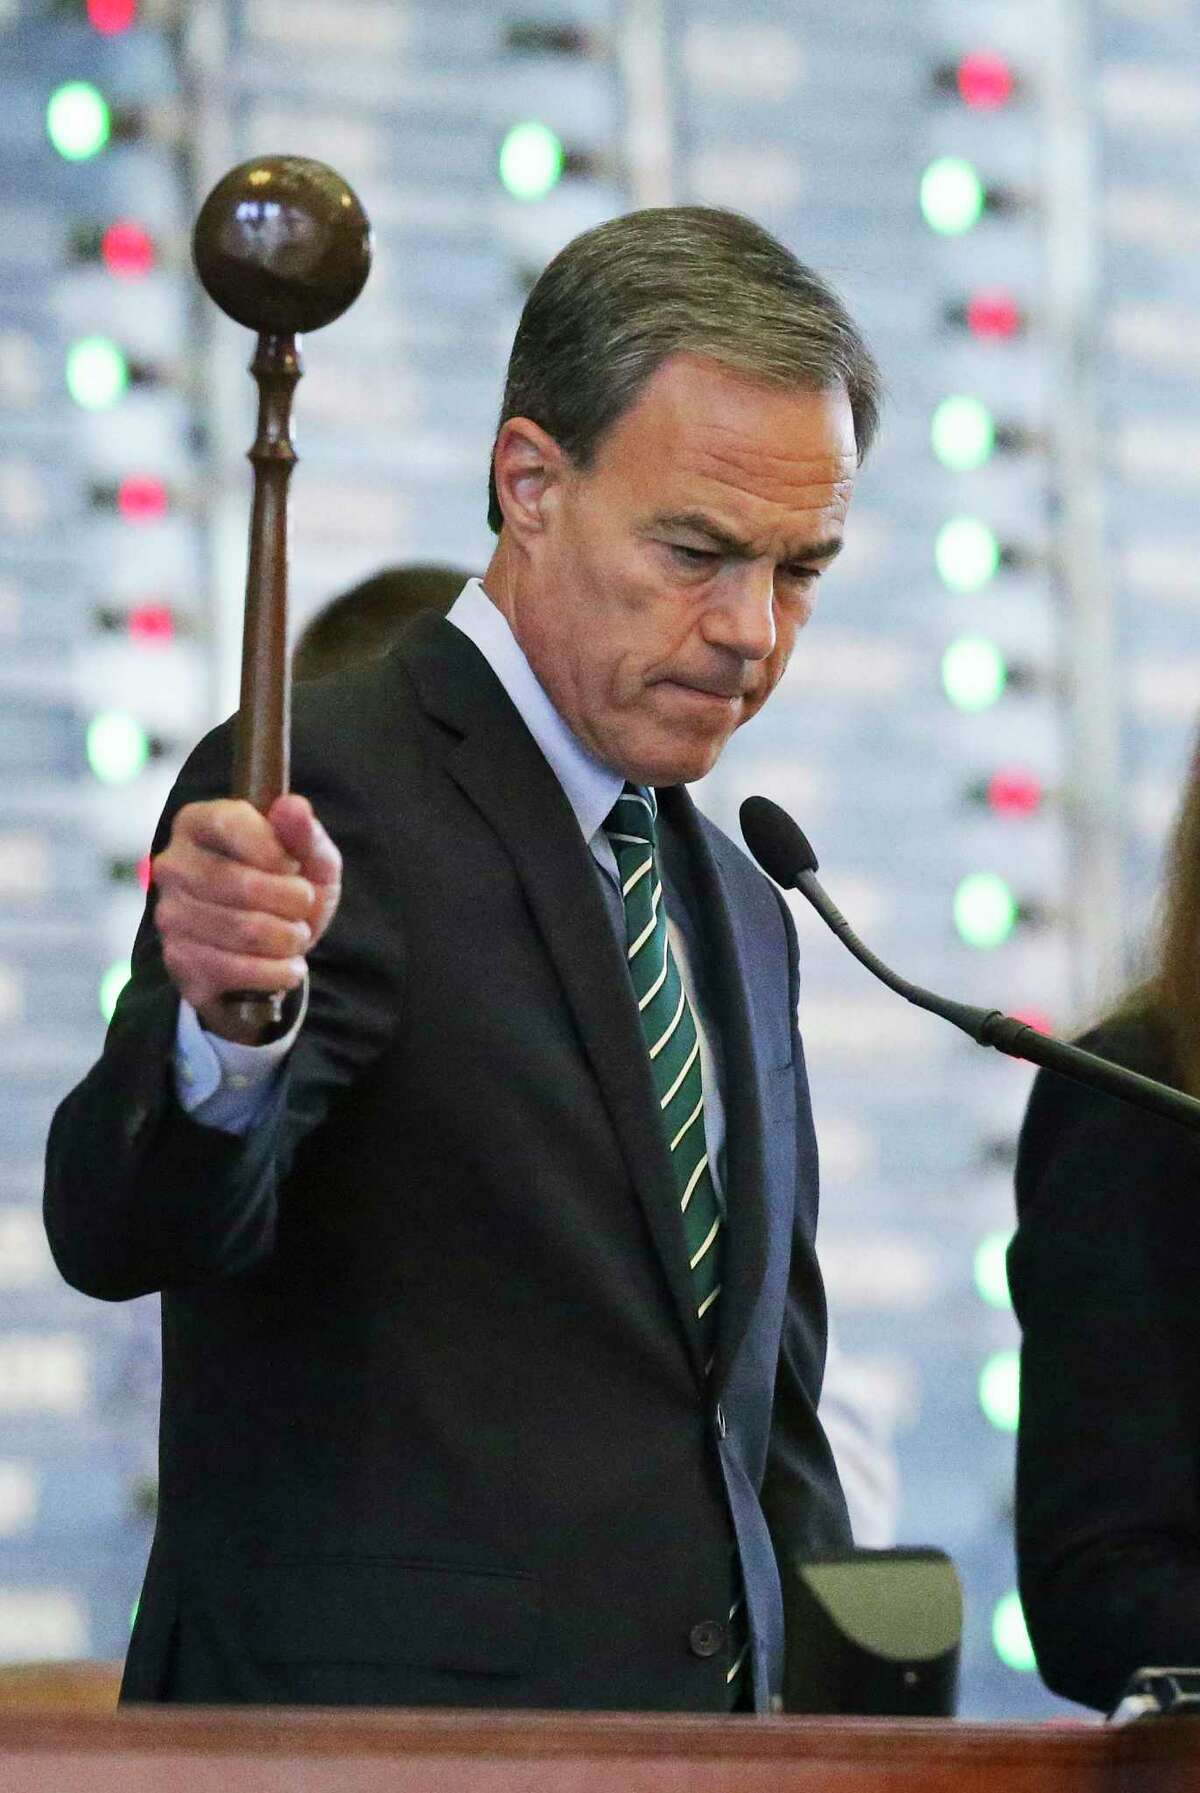 Speaker Joe Straus gavels in another defeated vote for amending proposed property tax law as legislators convene on Saturday to work on remaining bills at the State Capitol on August 12, 2017.